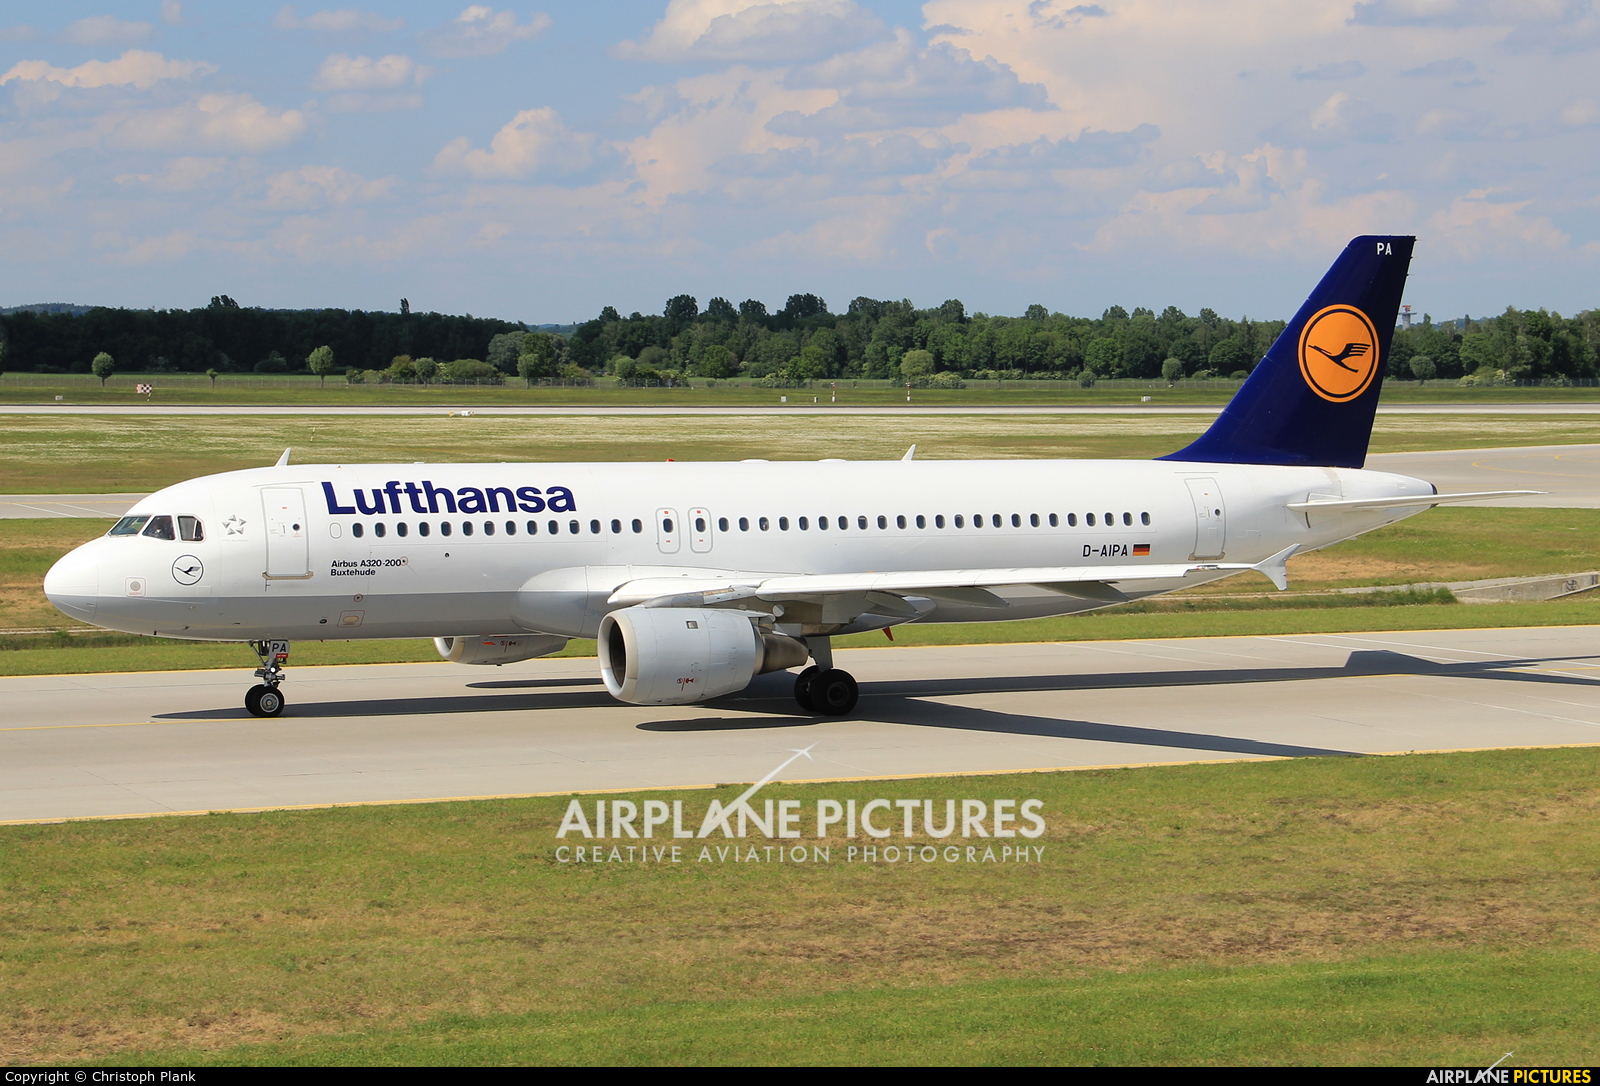 Lufthansa D-AIPA aircraft at Munich